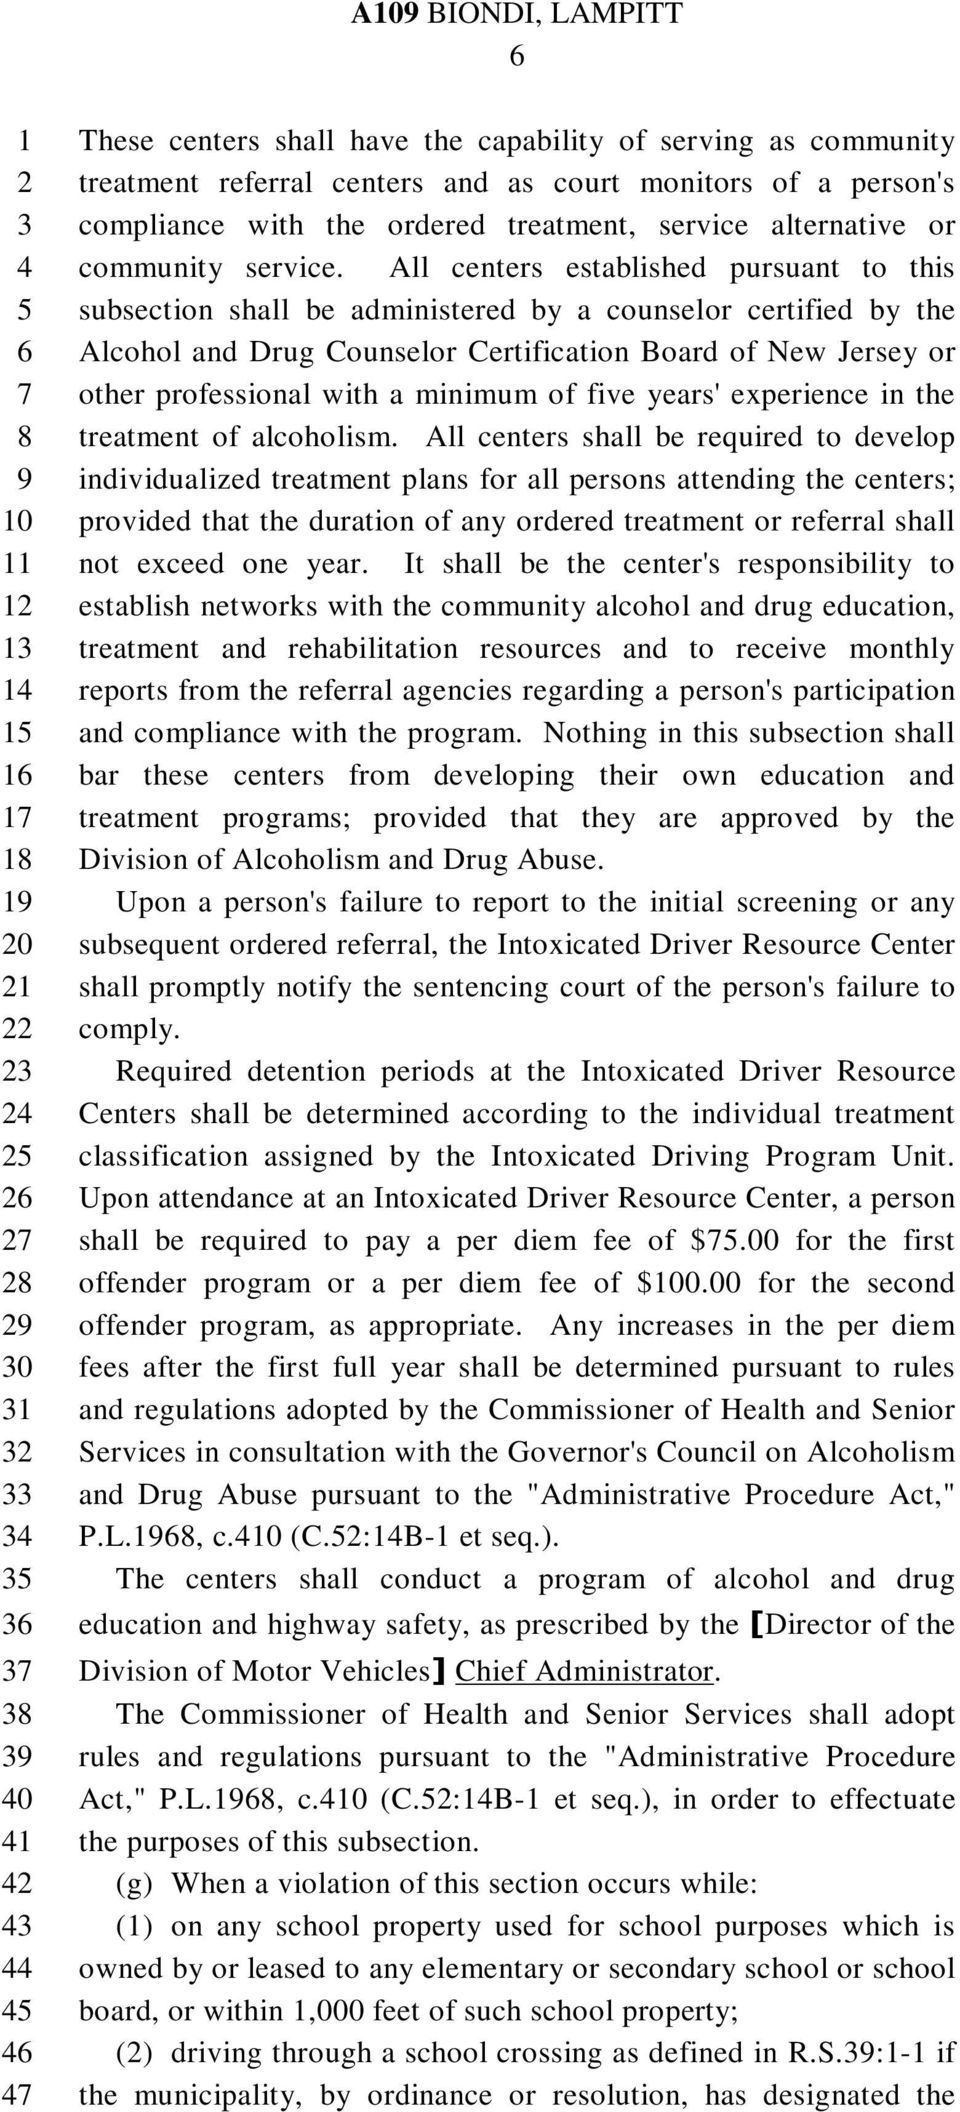 All centers established pursuant to this subsection shall be administered by a counselor certified by the Alcohol and Drug Counselor Certification Board of New Jersey or other professional with a